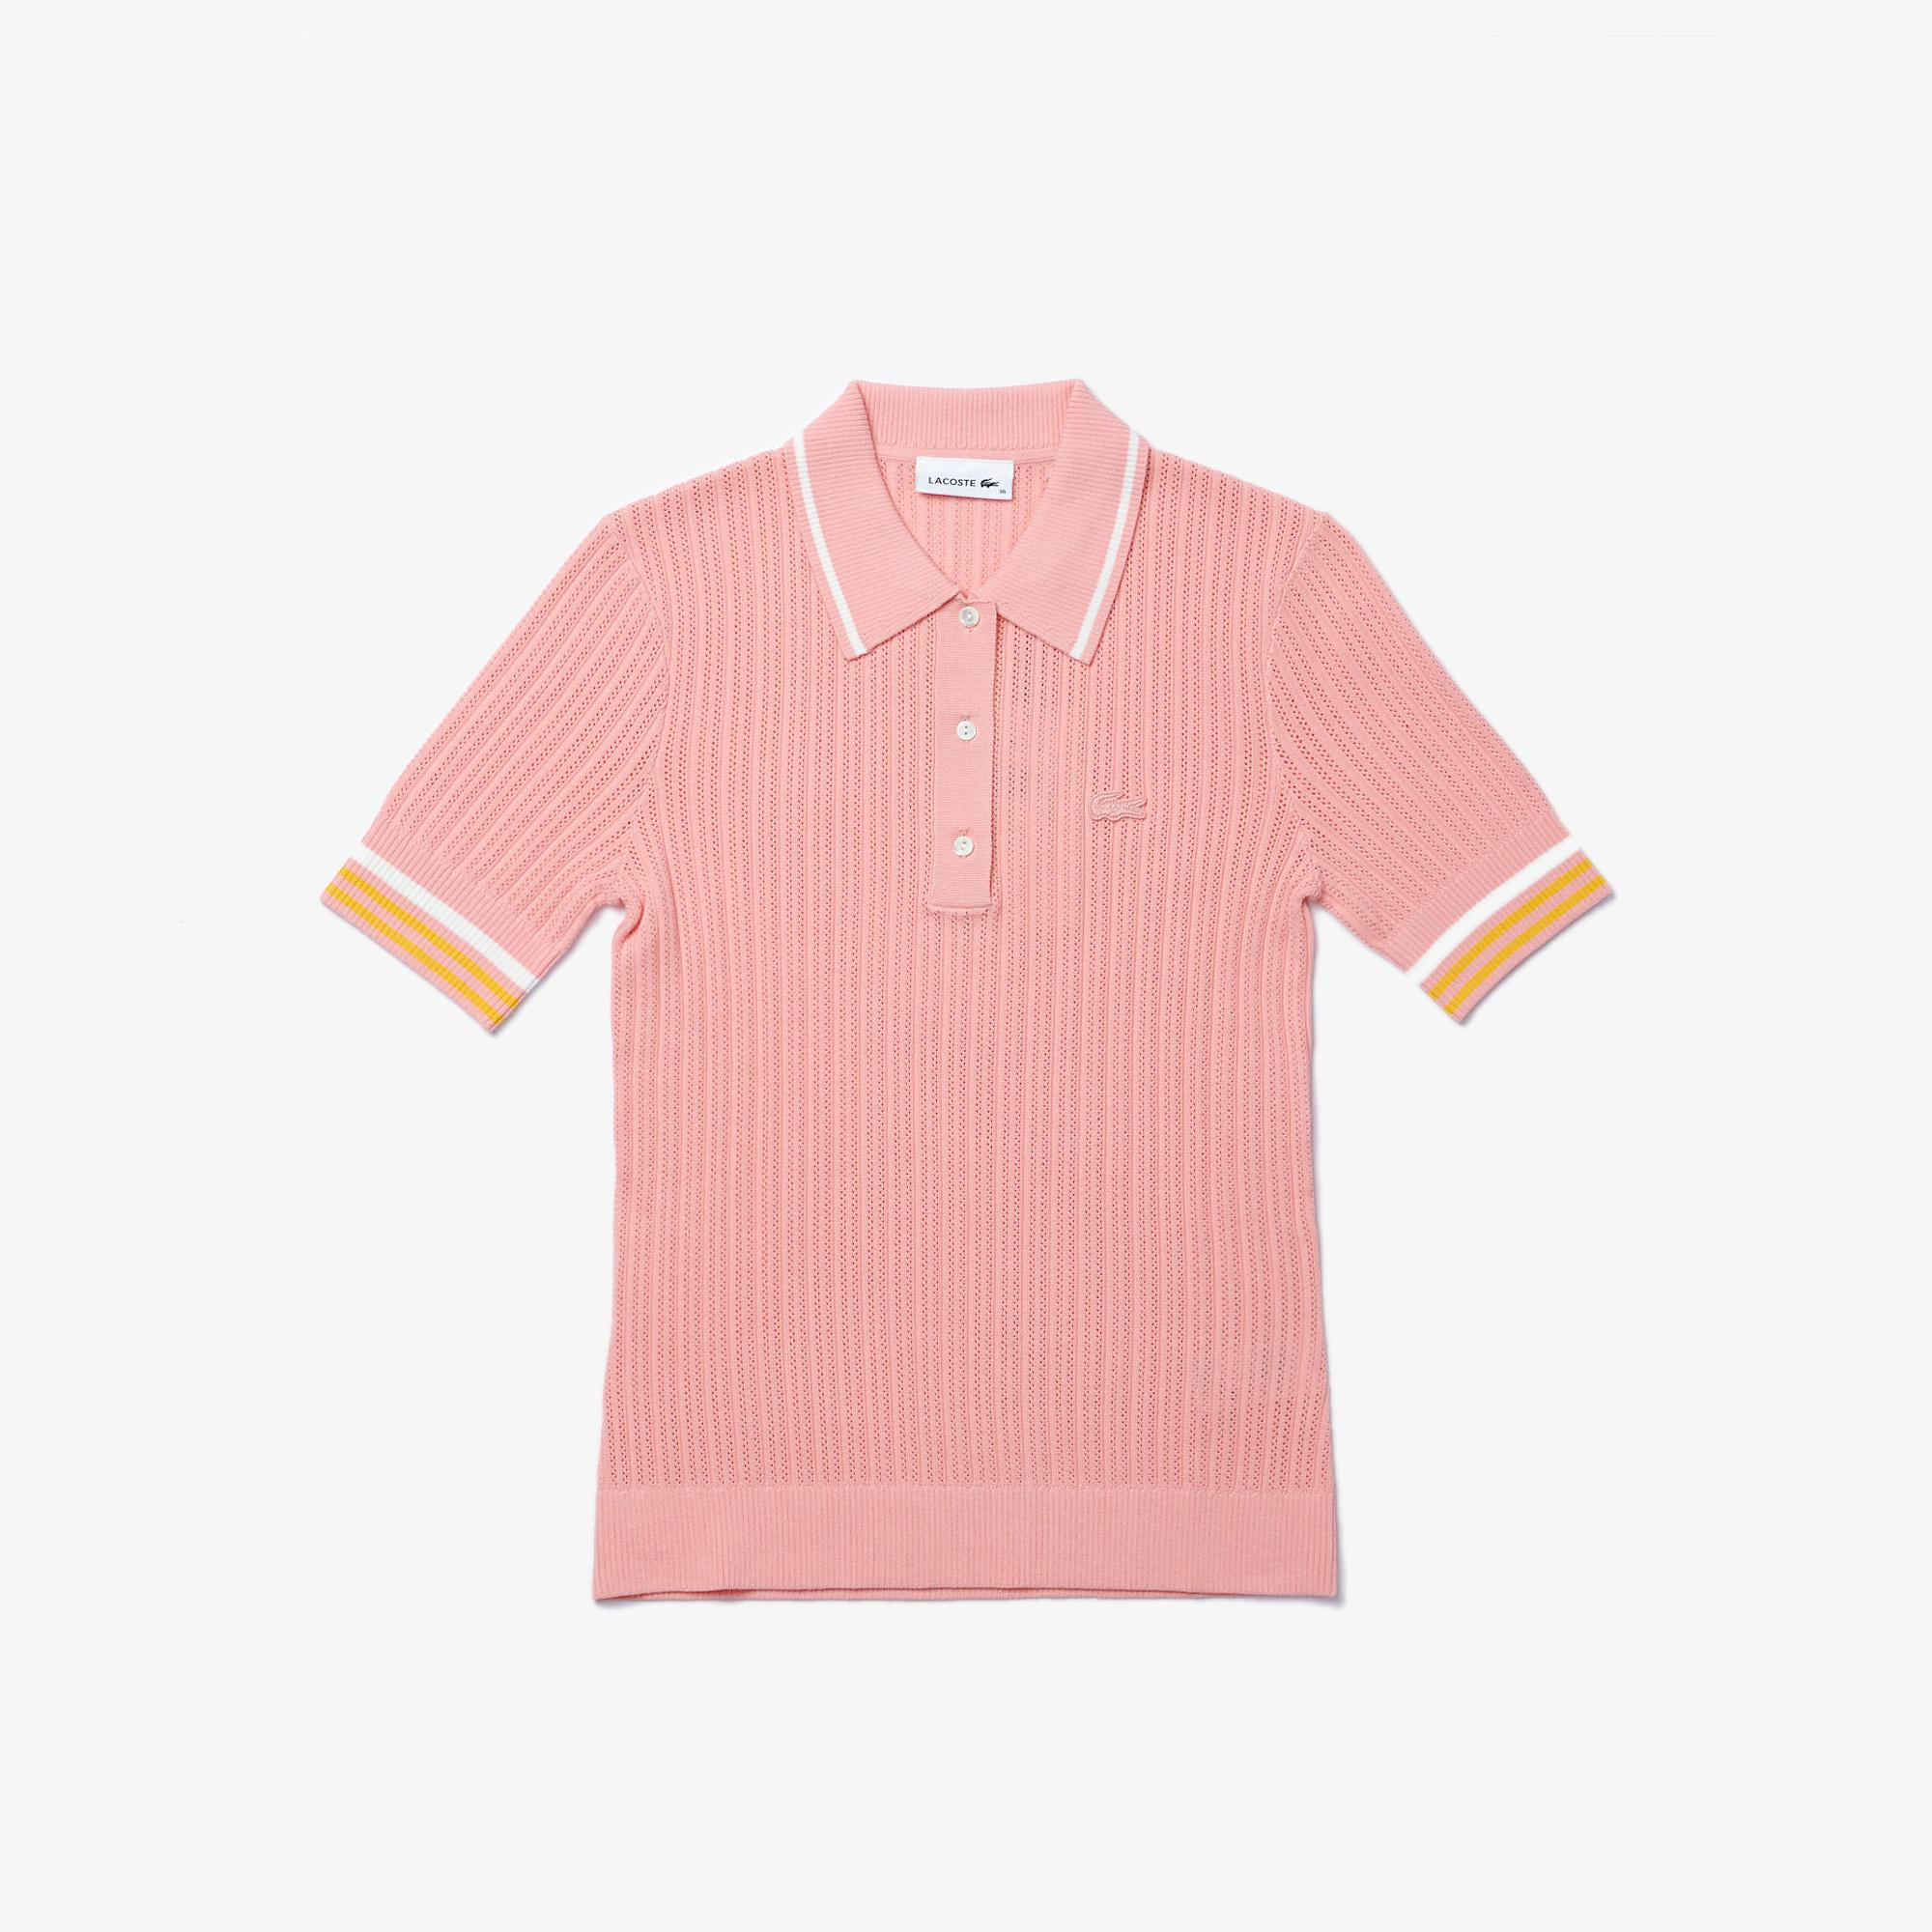 Lacoste Women's Slim Fit Striped Sleeve Knit Polo Shirt